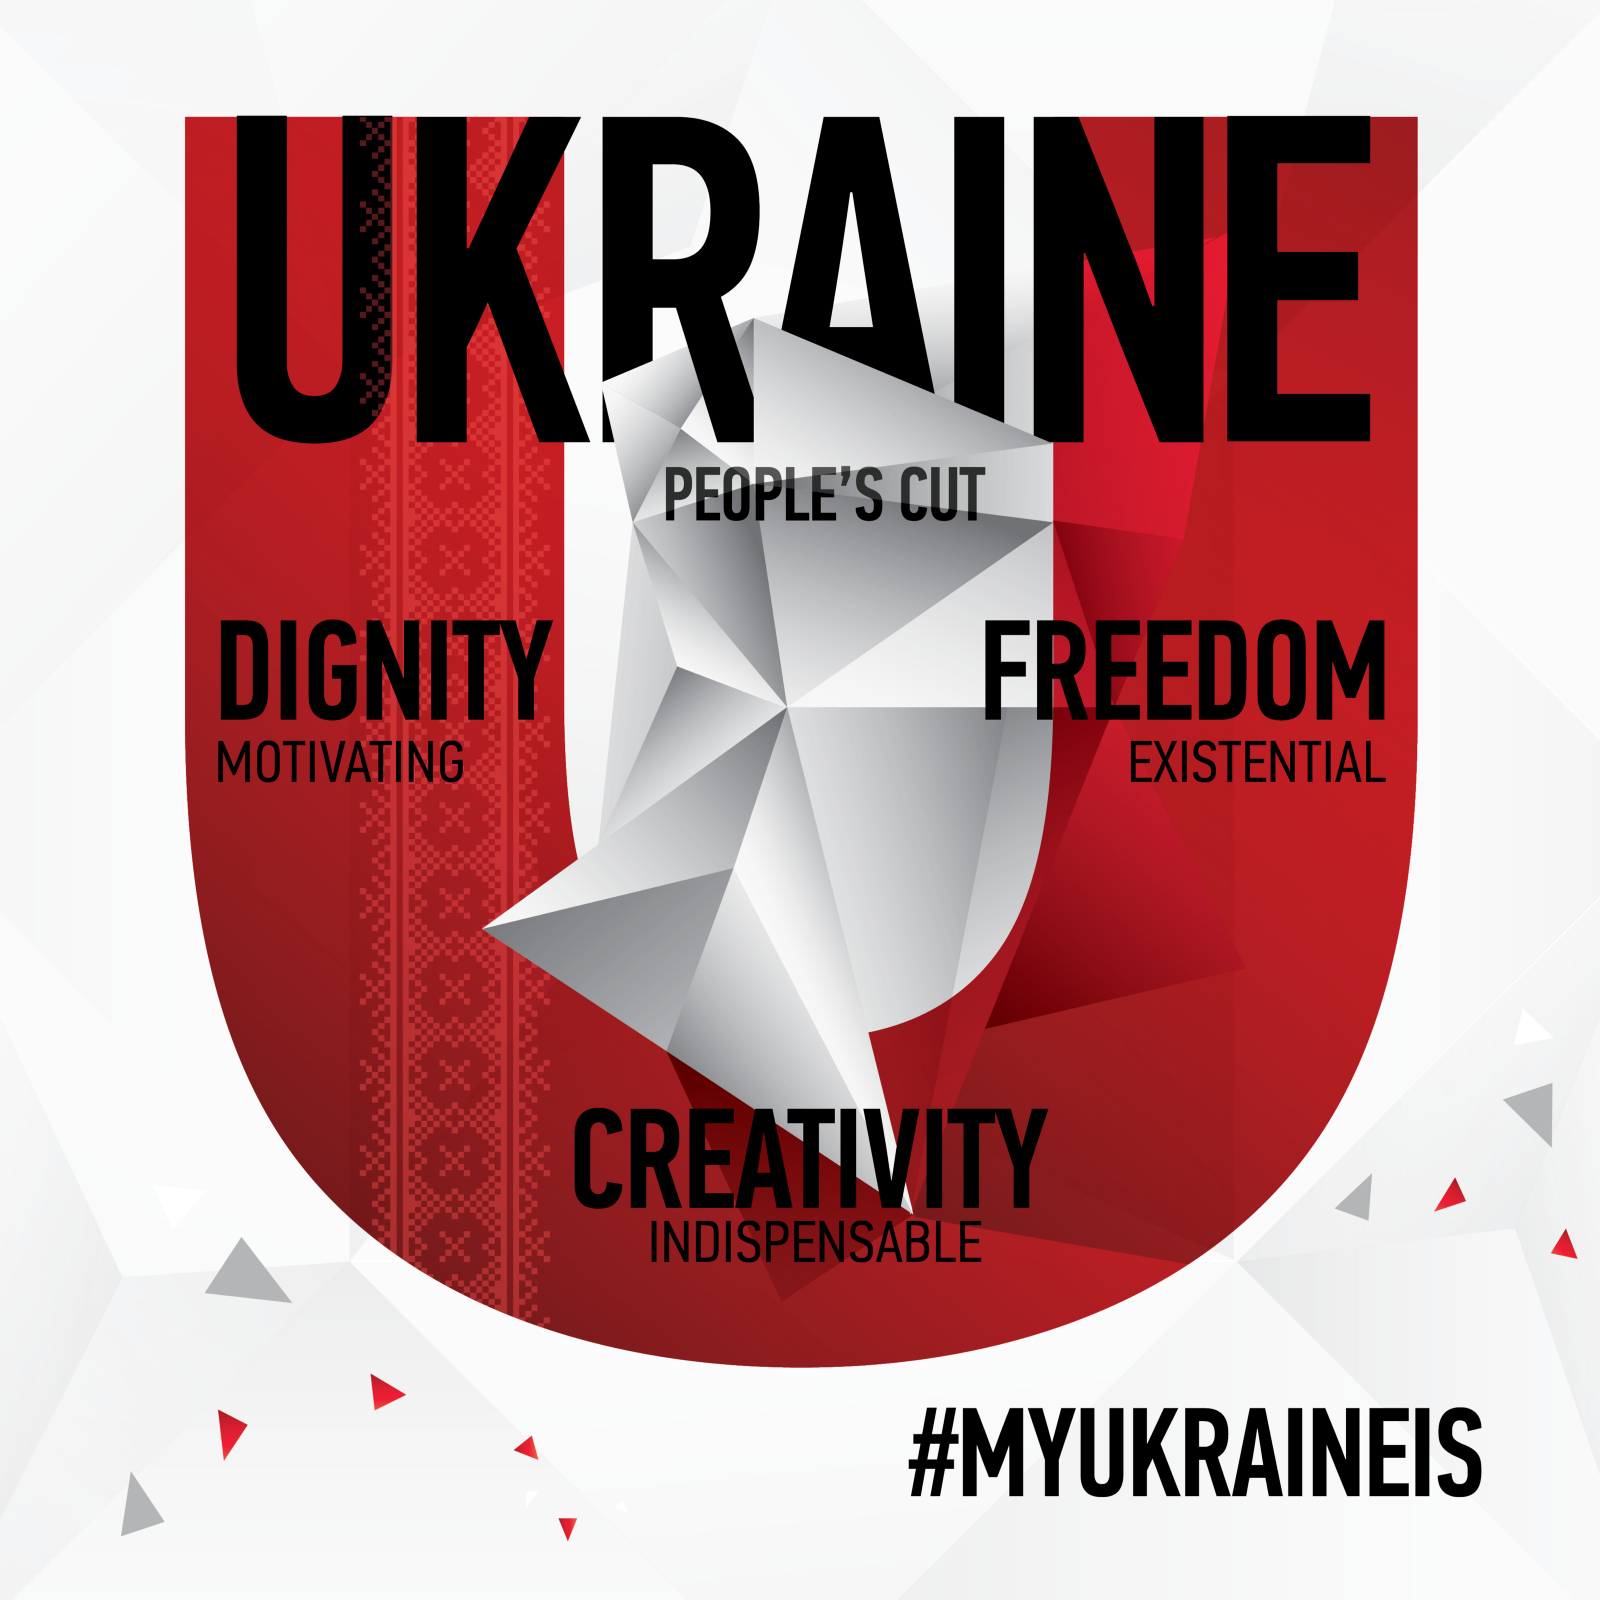 Ukrainian Foreign Ministry Launched International Online Campaign #MyUkraineIs